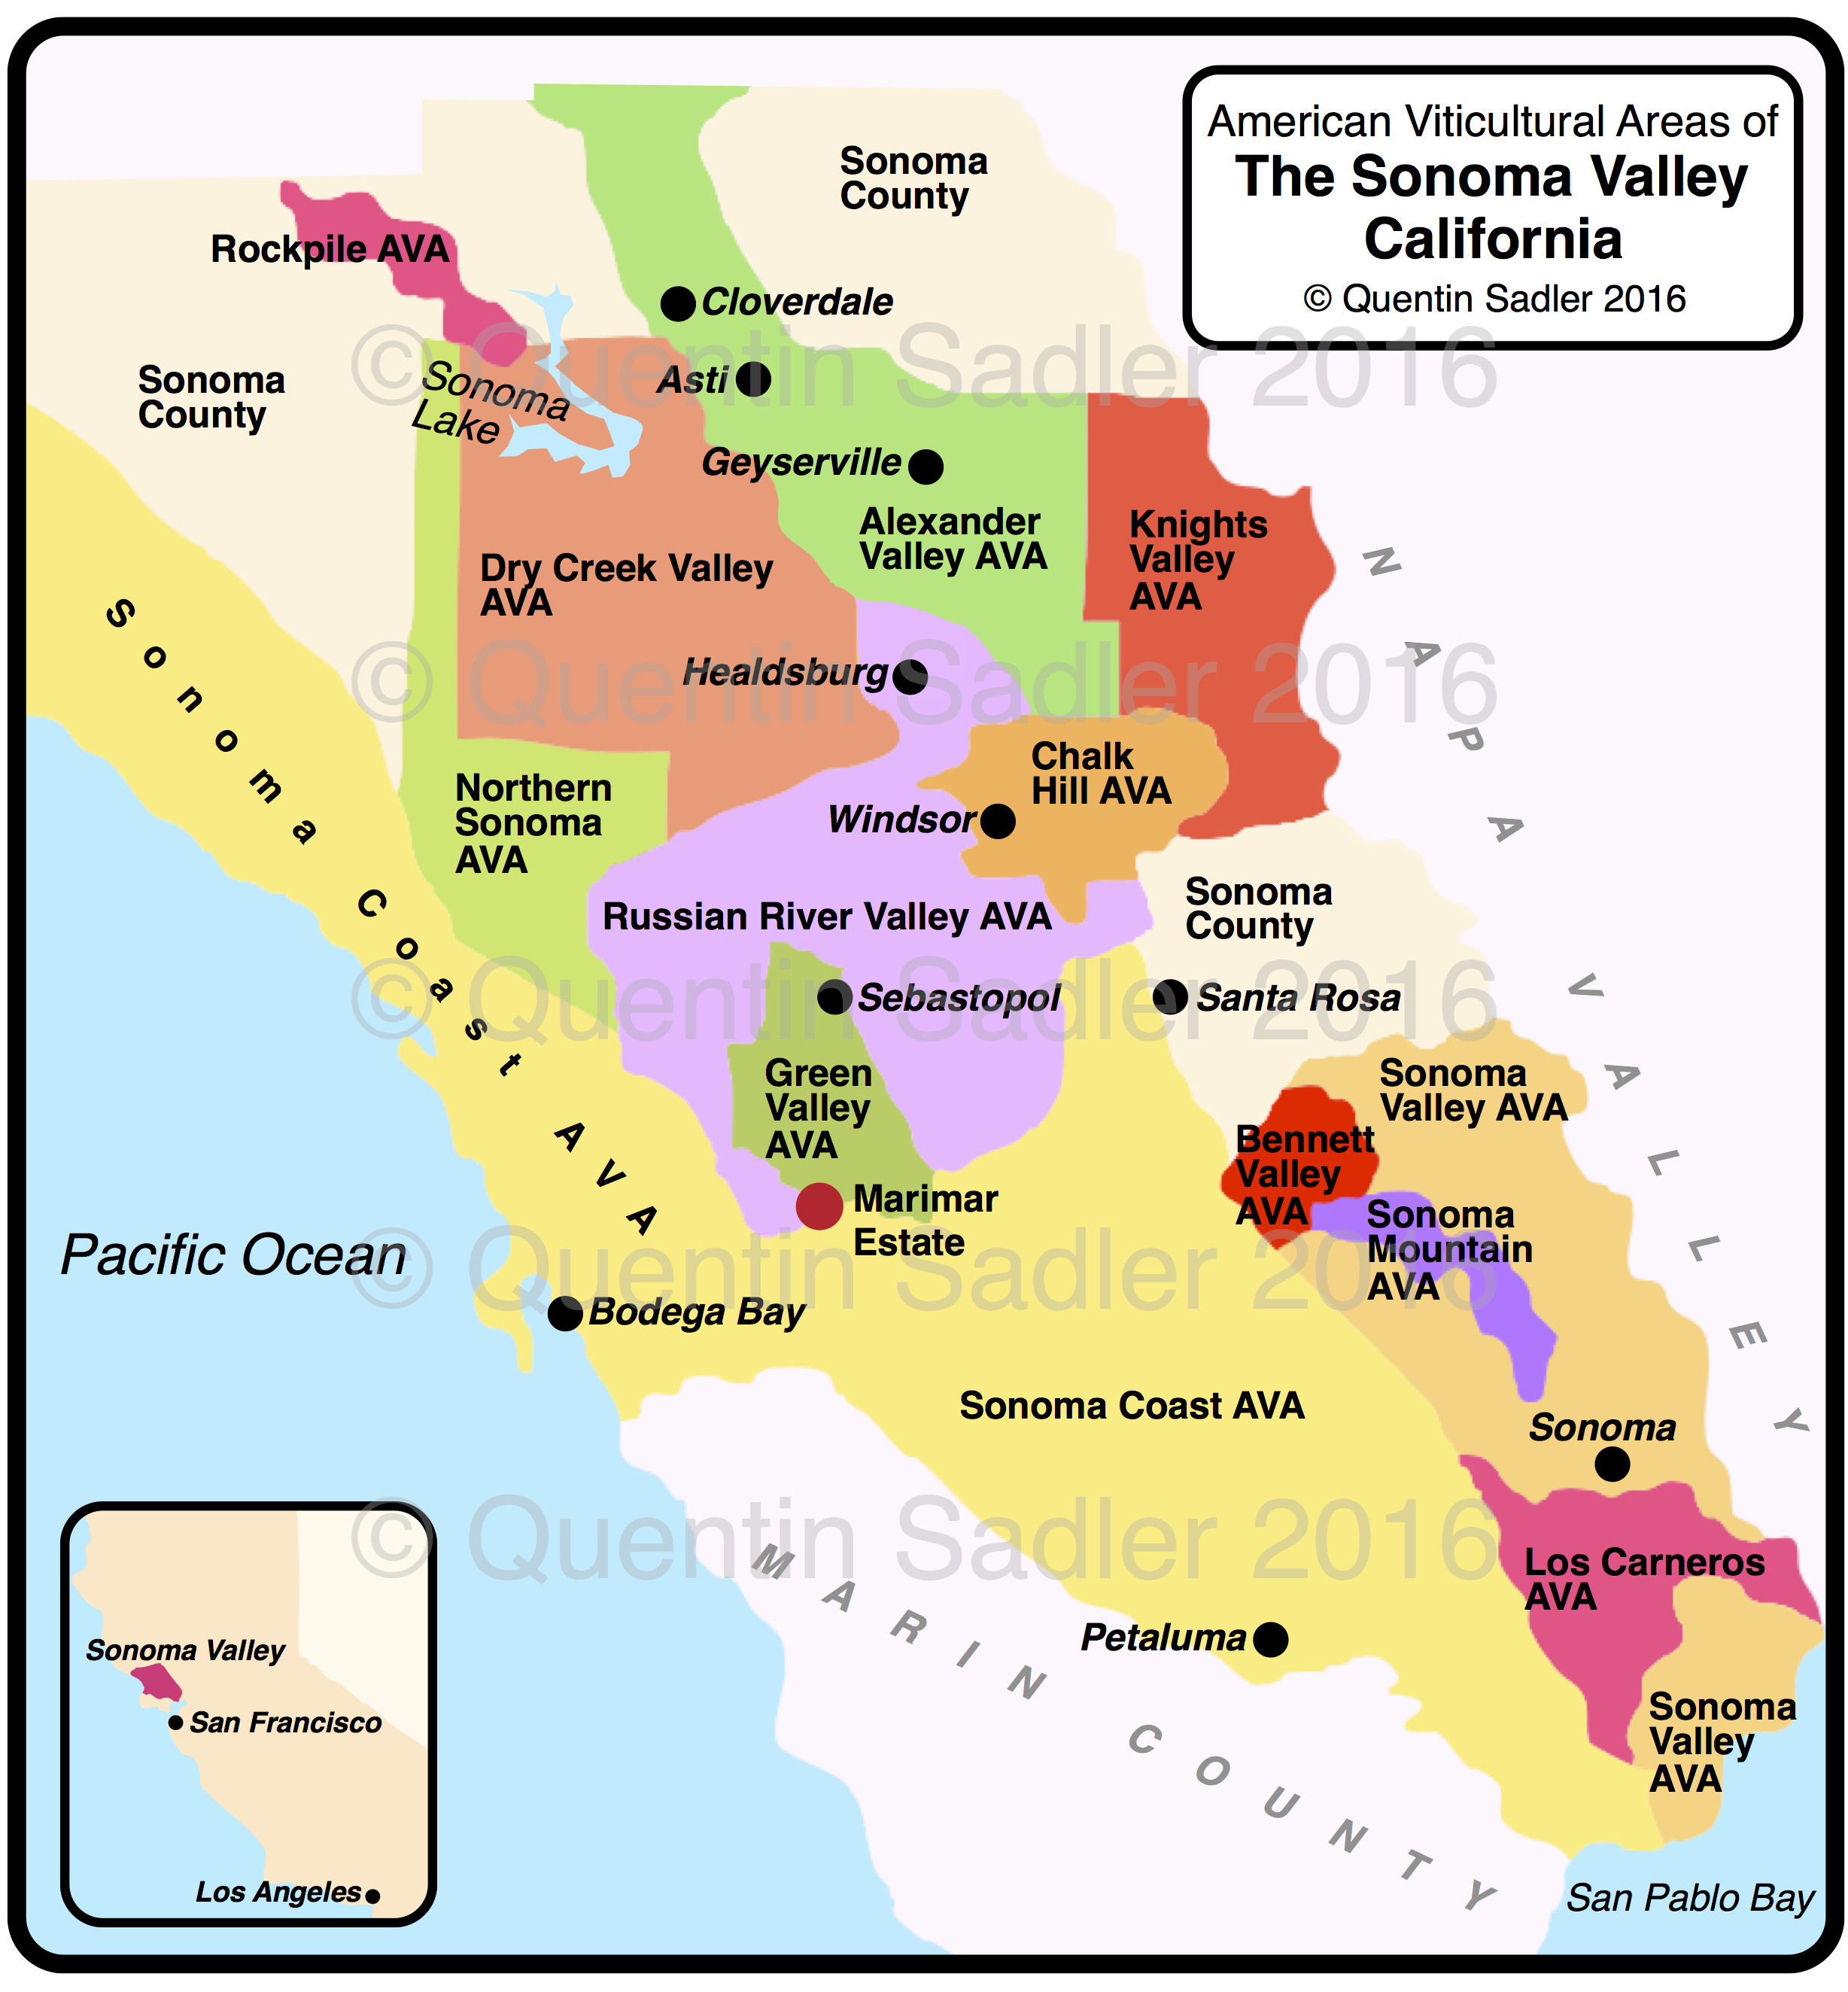 Southern California Wine Country Map Fresh Sonoma Valley - Wine Country Map Of California